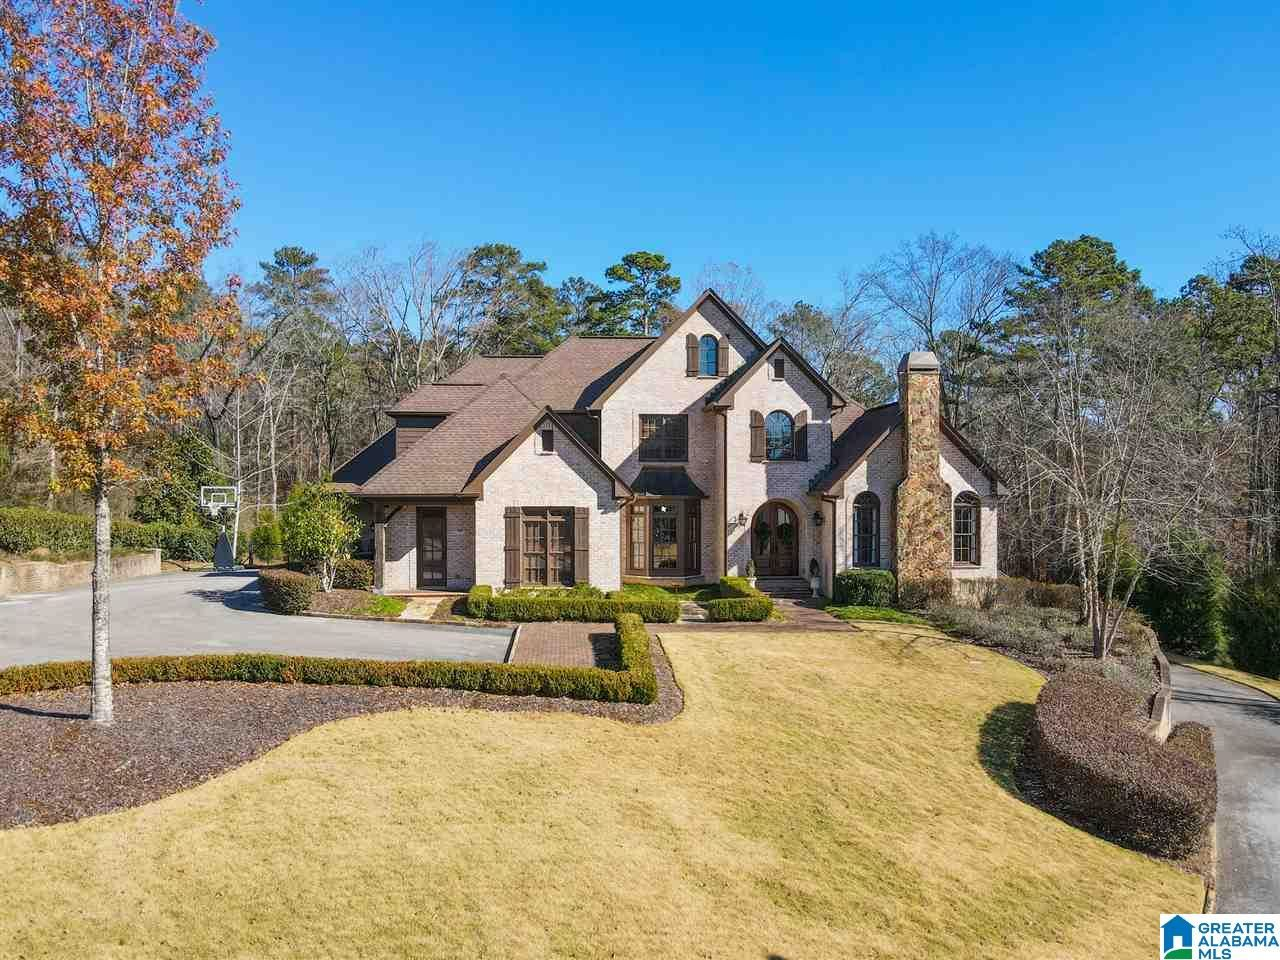 3928 ROCK CREEK DR, Mountain Brook, AL 35223 - MLS#: 1271432